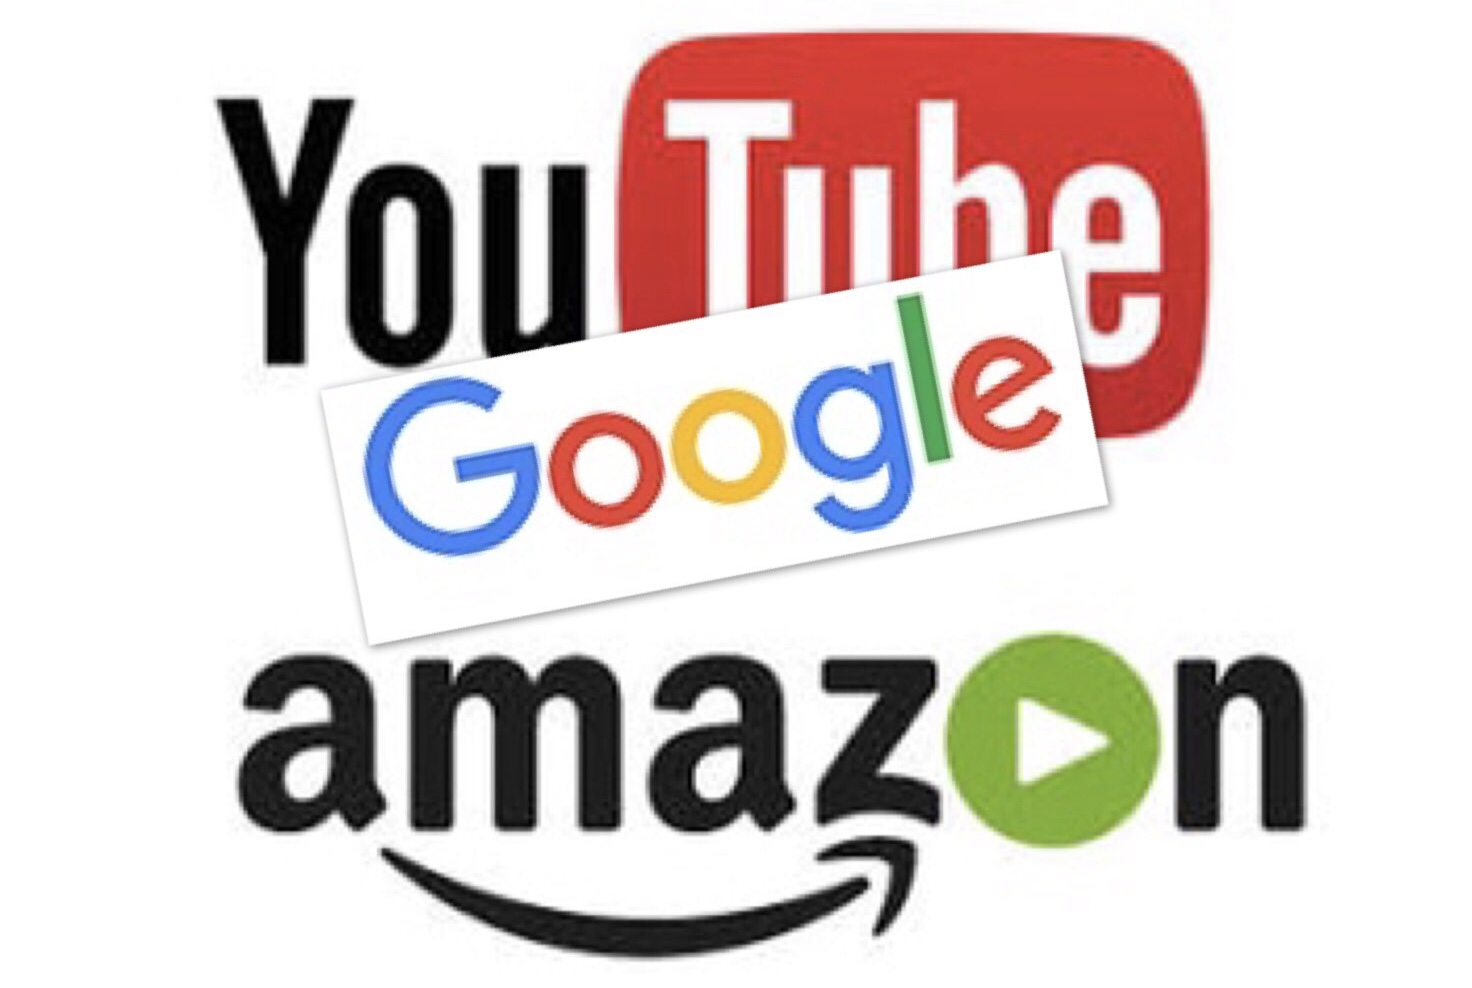 Google bloquea YouTube en los dispositivos de Amazon